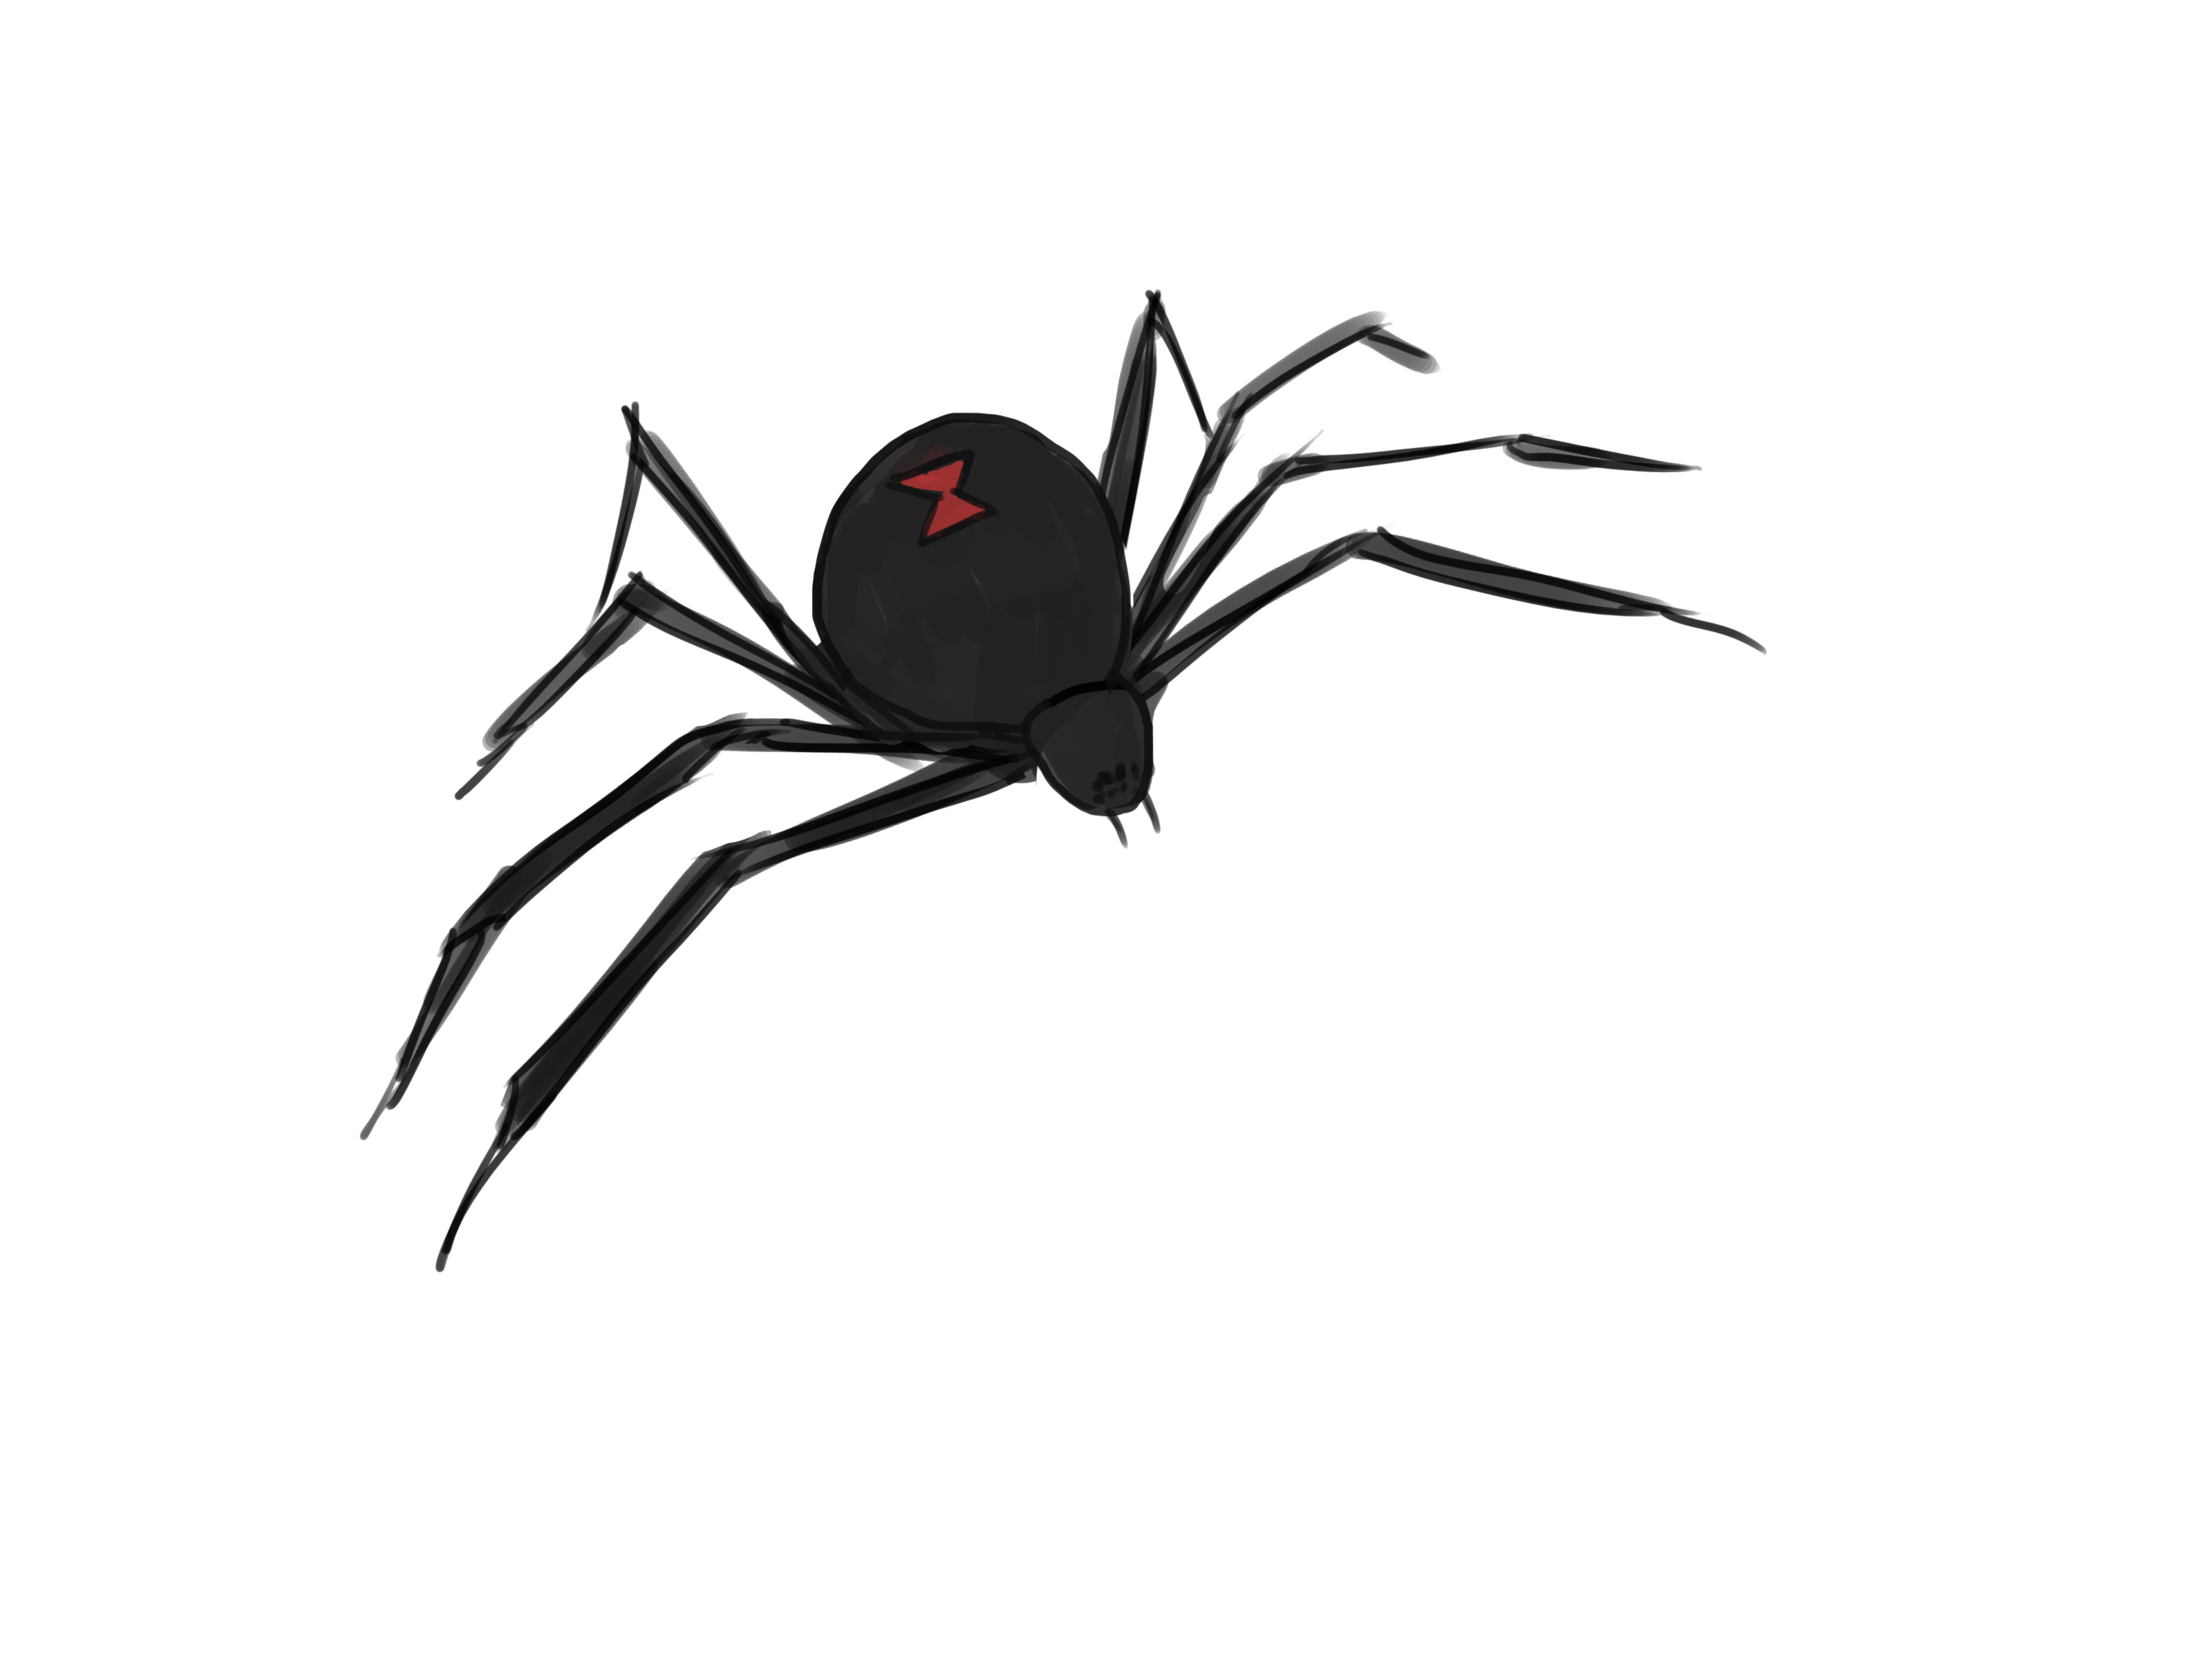 Drawn spider web cartoon Ways to wikiHow a Spider